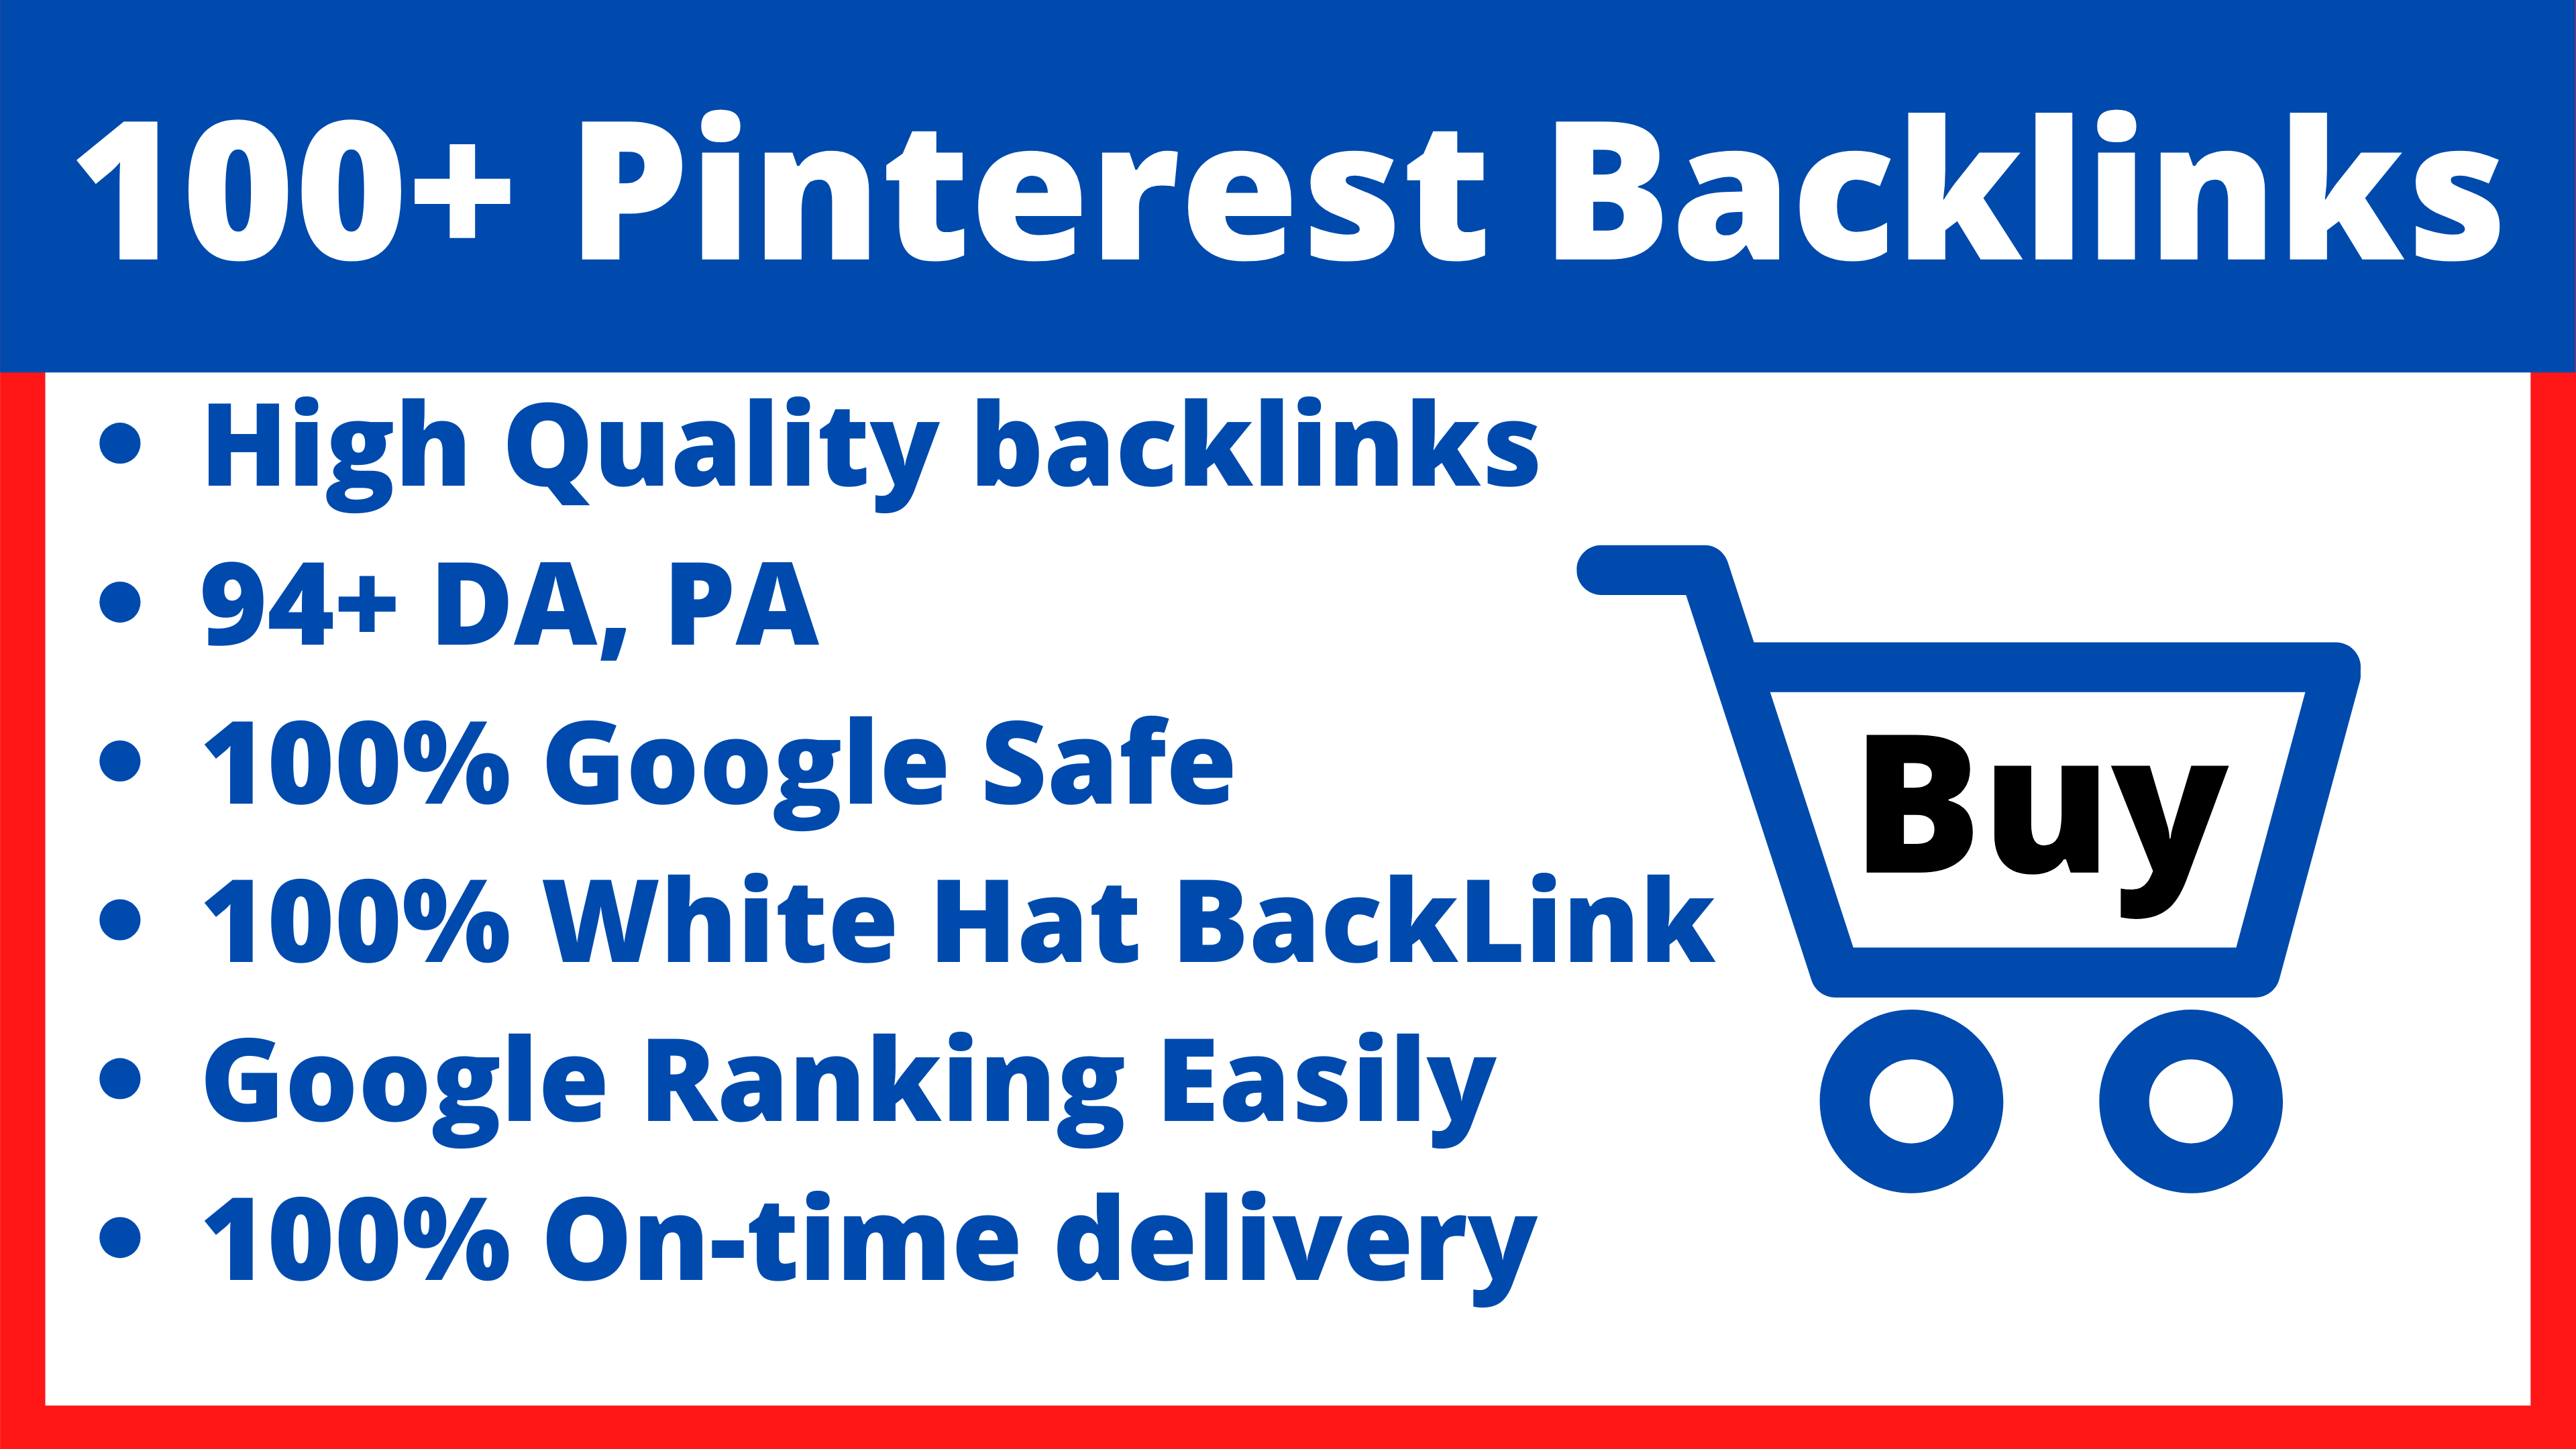 Give you 100 CO UK Site Pinterest High Quality Backlink 94 DA 95 PA